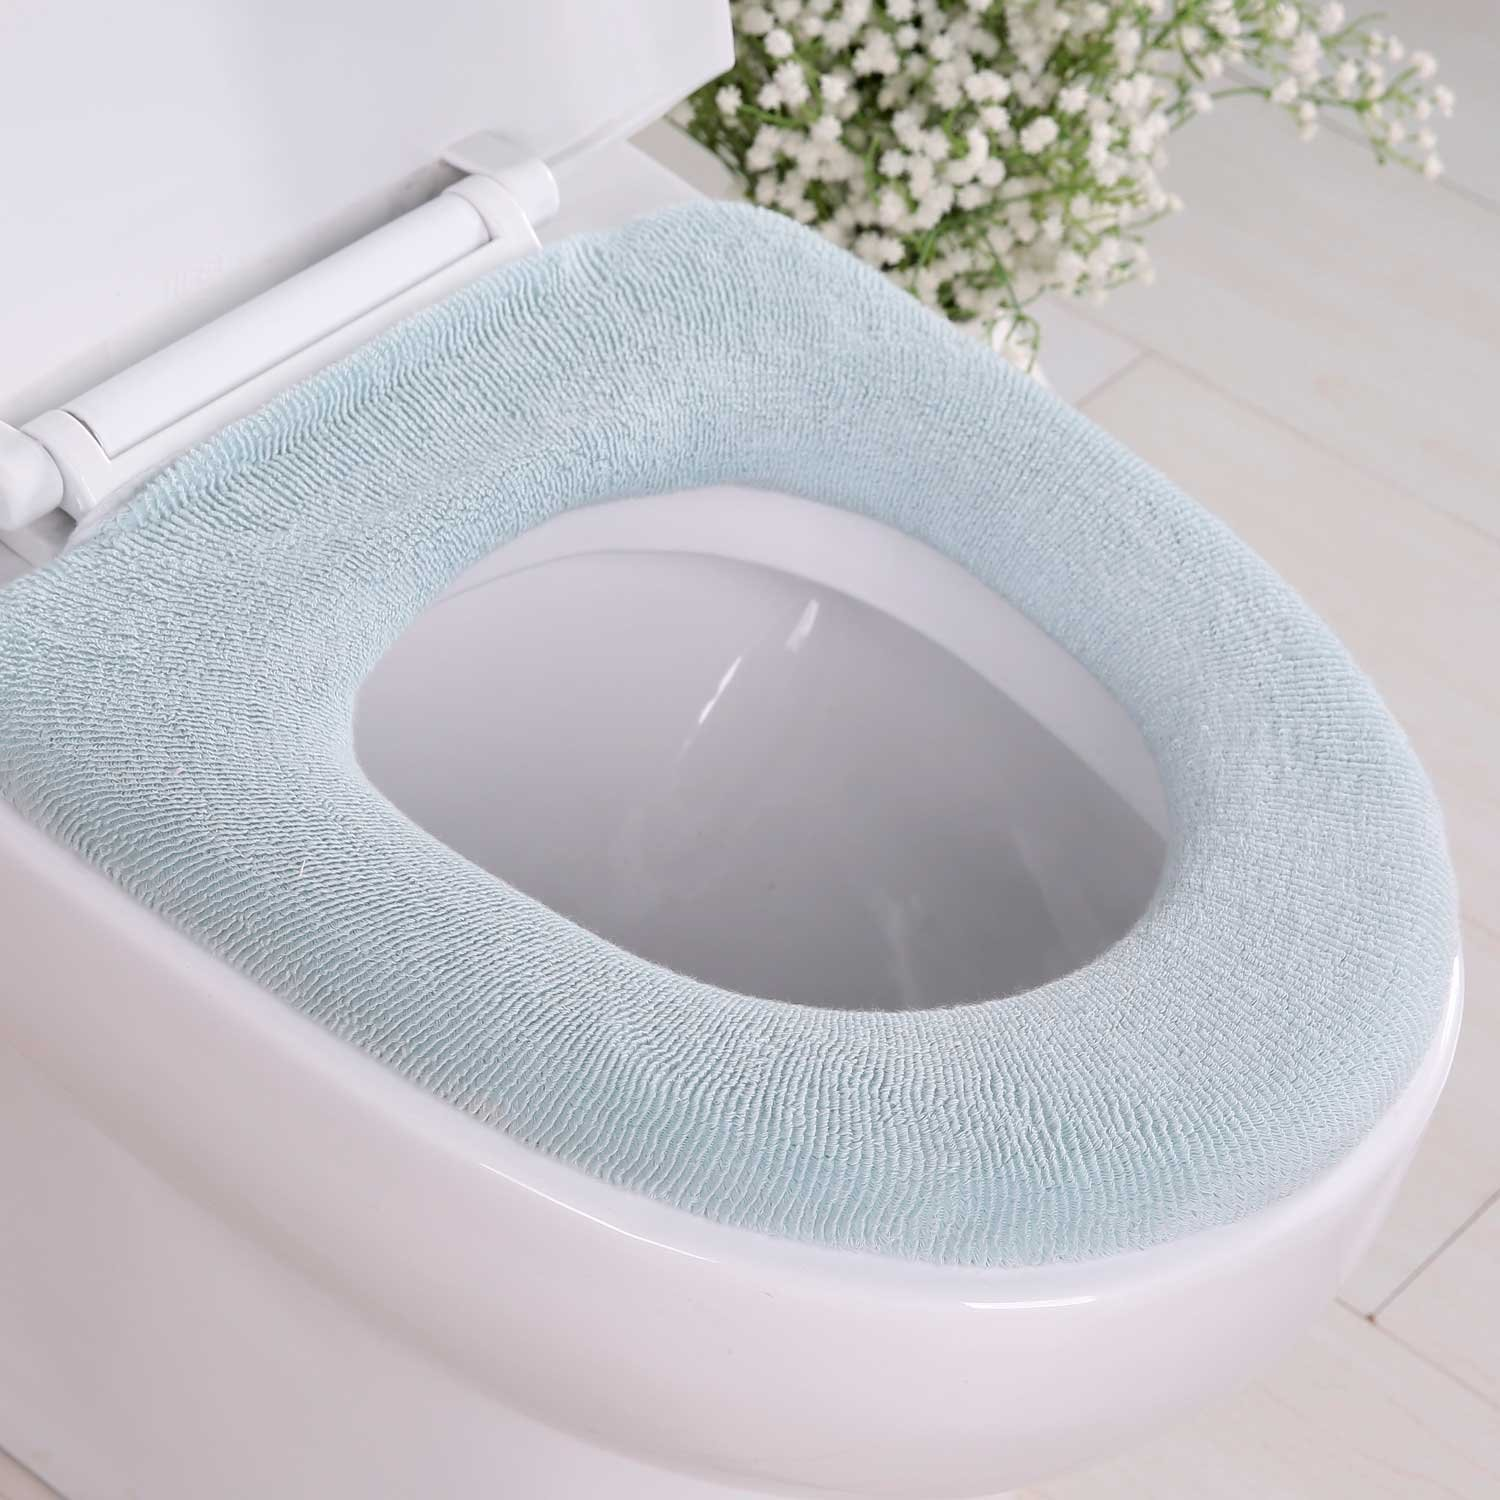 BLACK TERRY CLOTH ELONGATED TOILET SEAT LID COVER